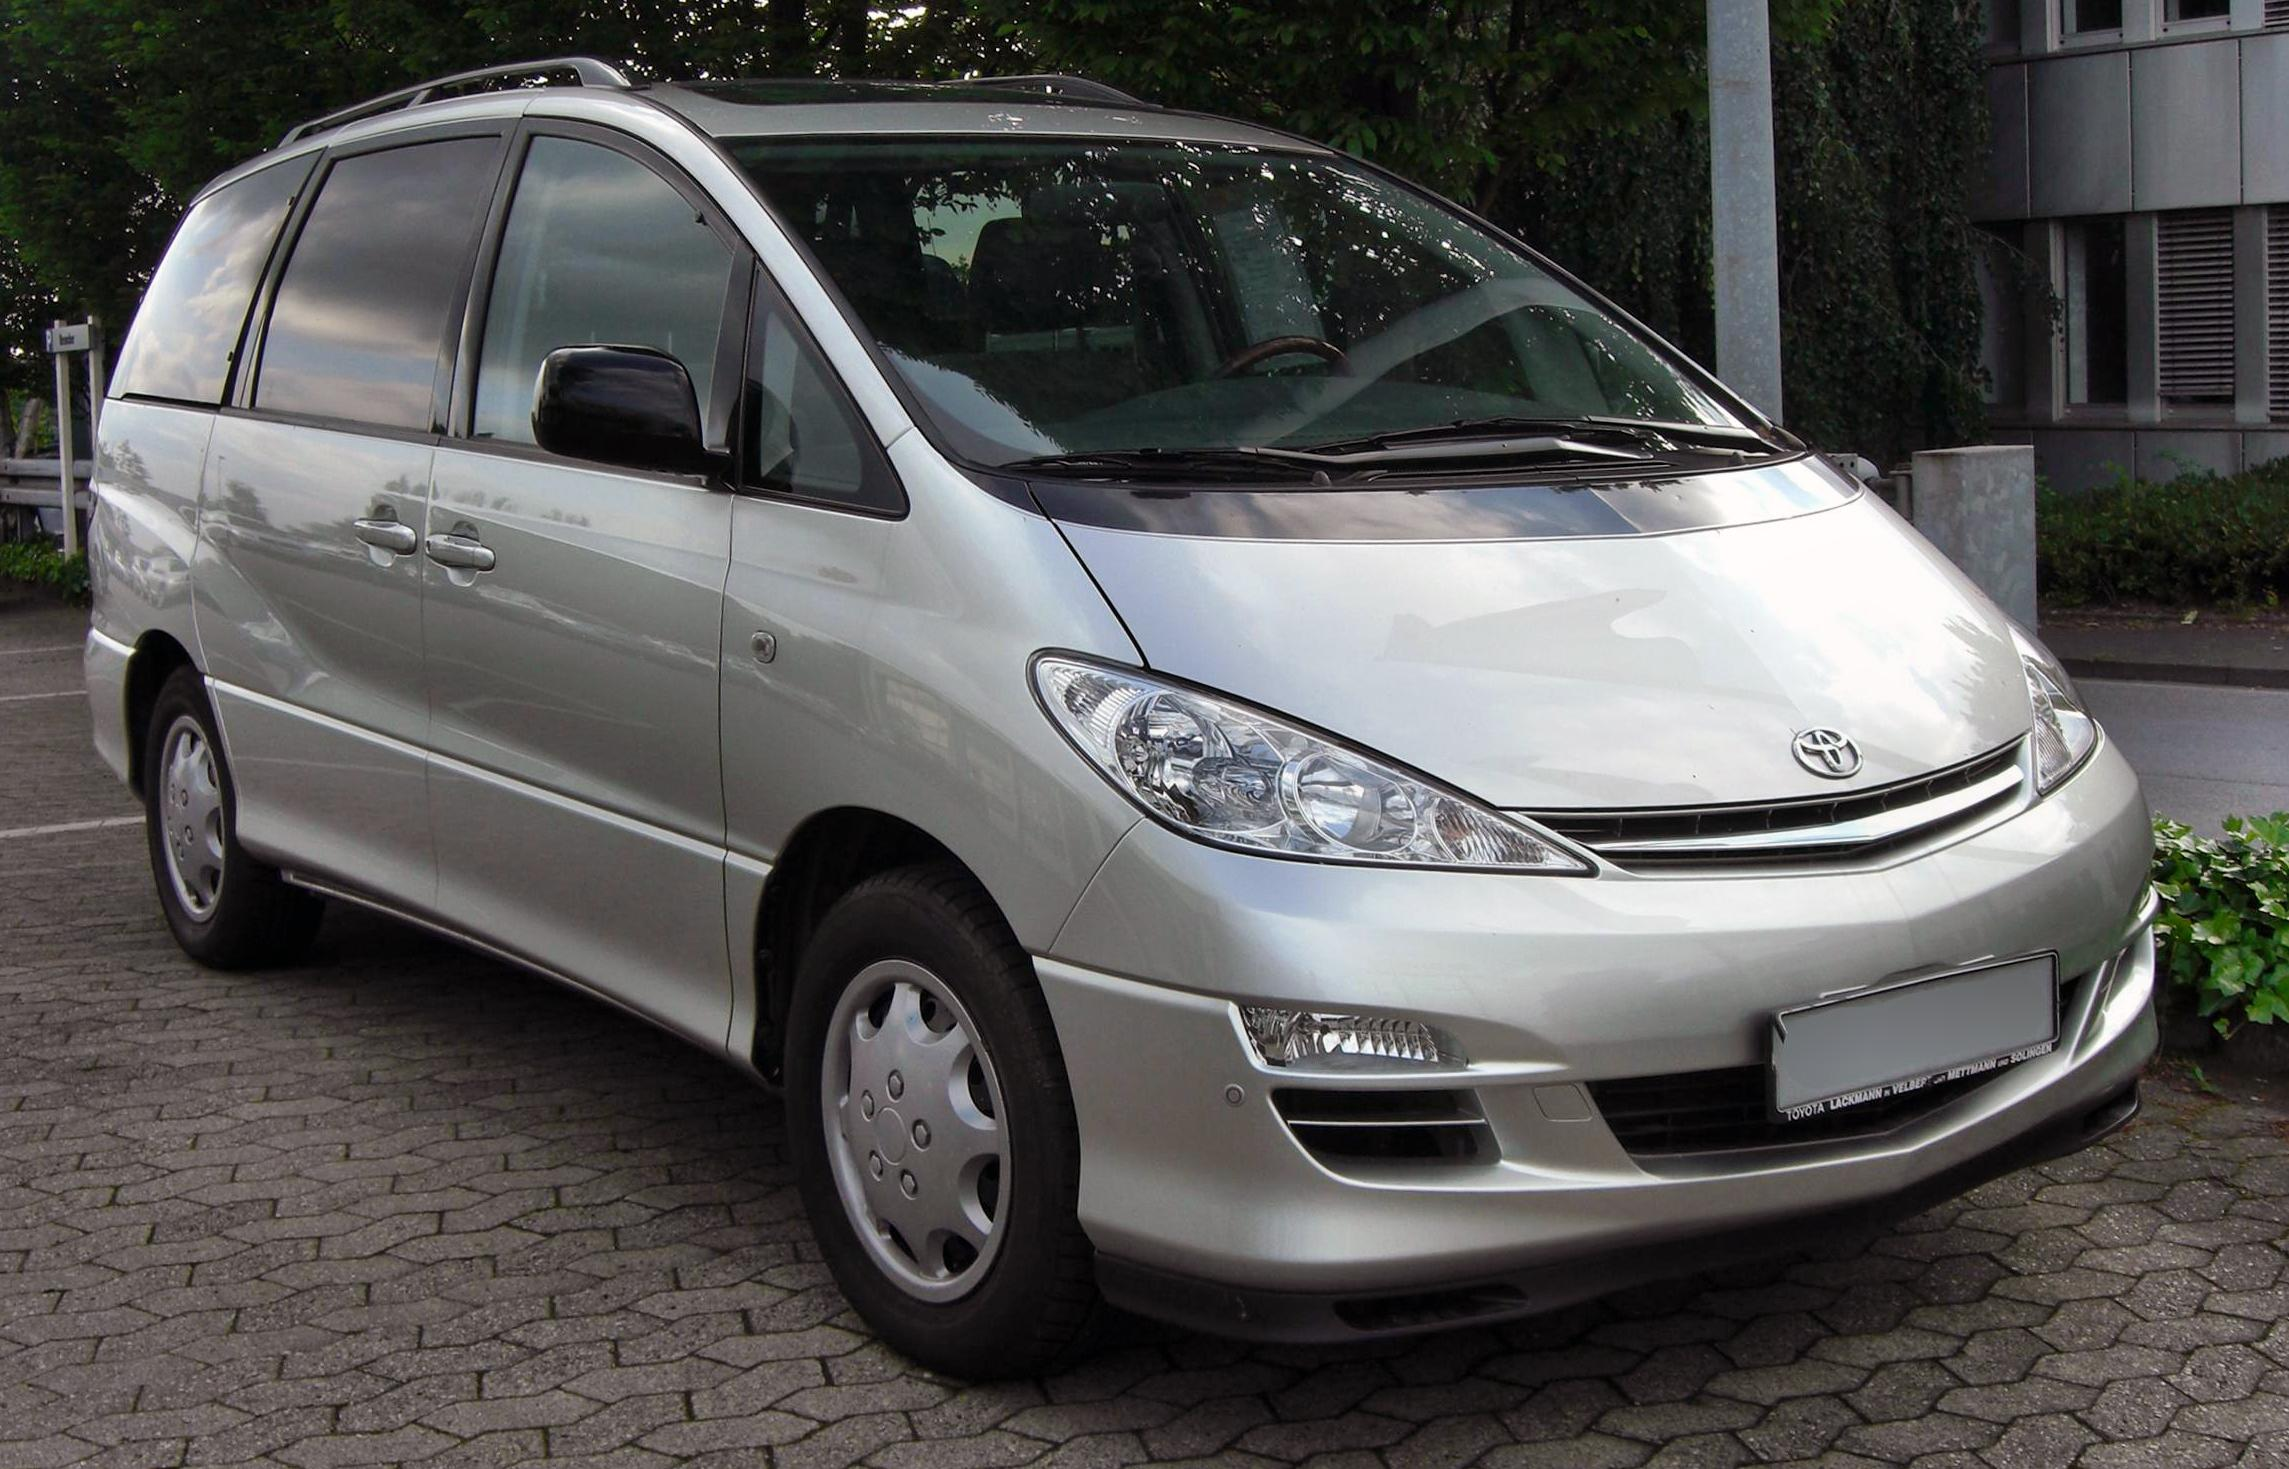 Toyota Previa | Tractor & Construction Plant Wiki | FANDOM powered by Wikia